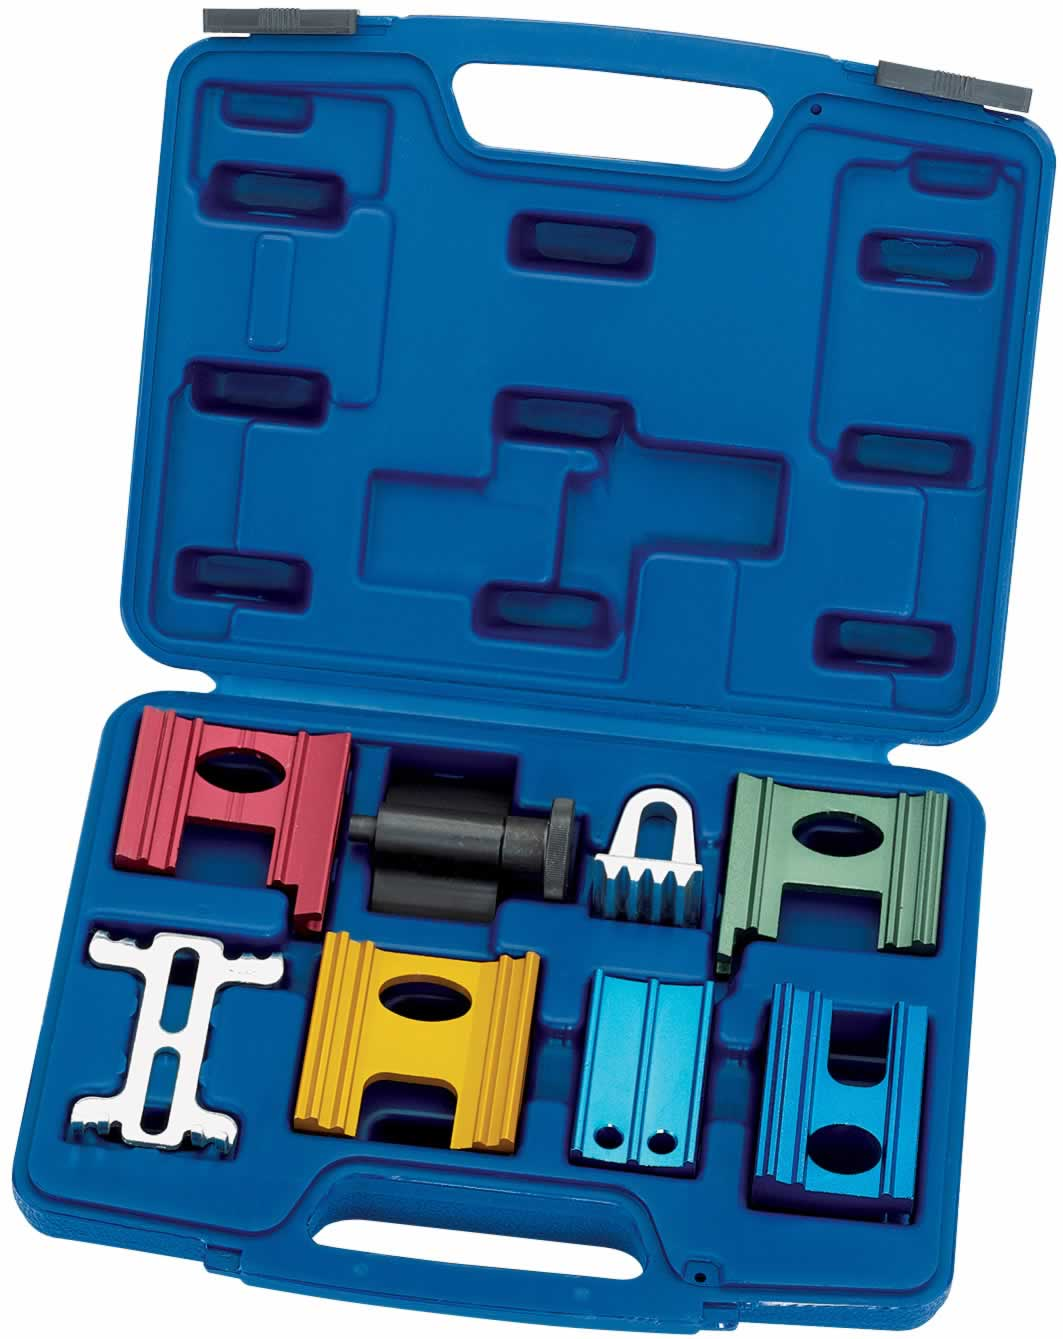 EXPERT 8 PCE CAMSHAFT/FLYWHEEL LOCKING/HOLDING KIT  (ah)*